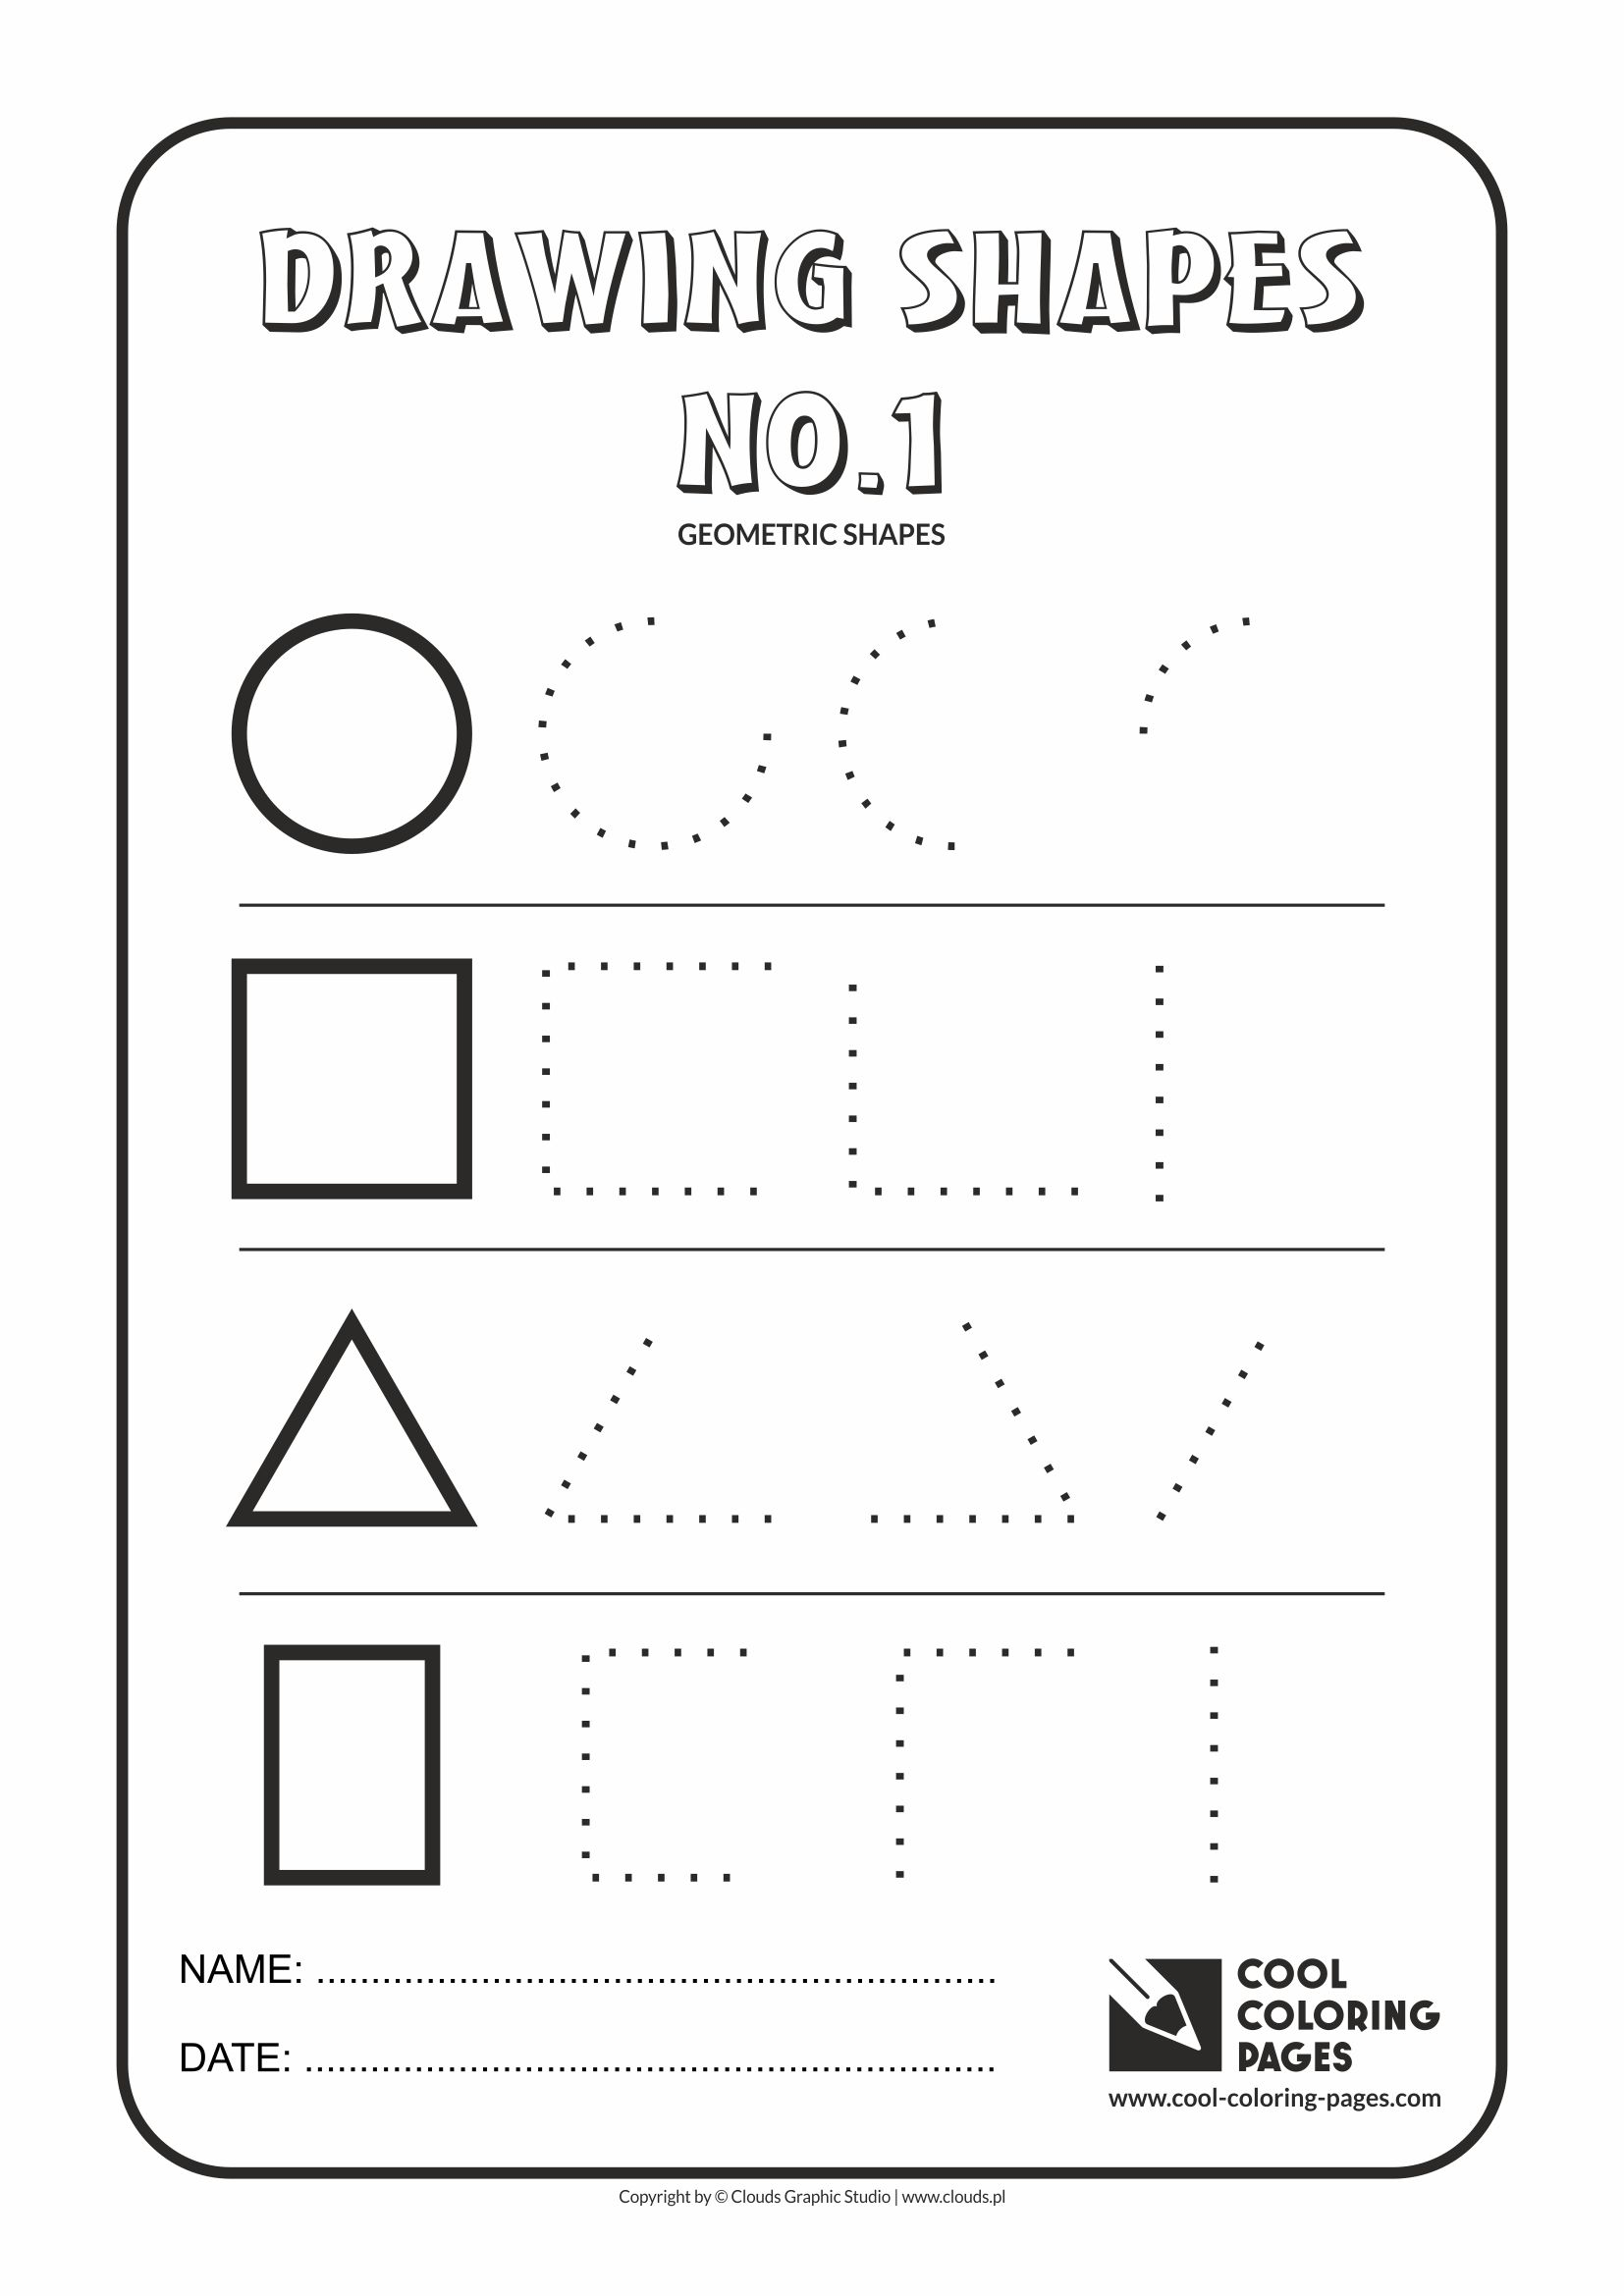 Cool Coloring Pages Geometric Shapes - Cool Coloring Pages ...